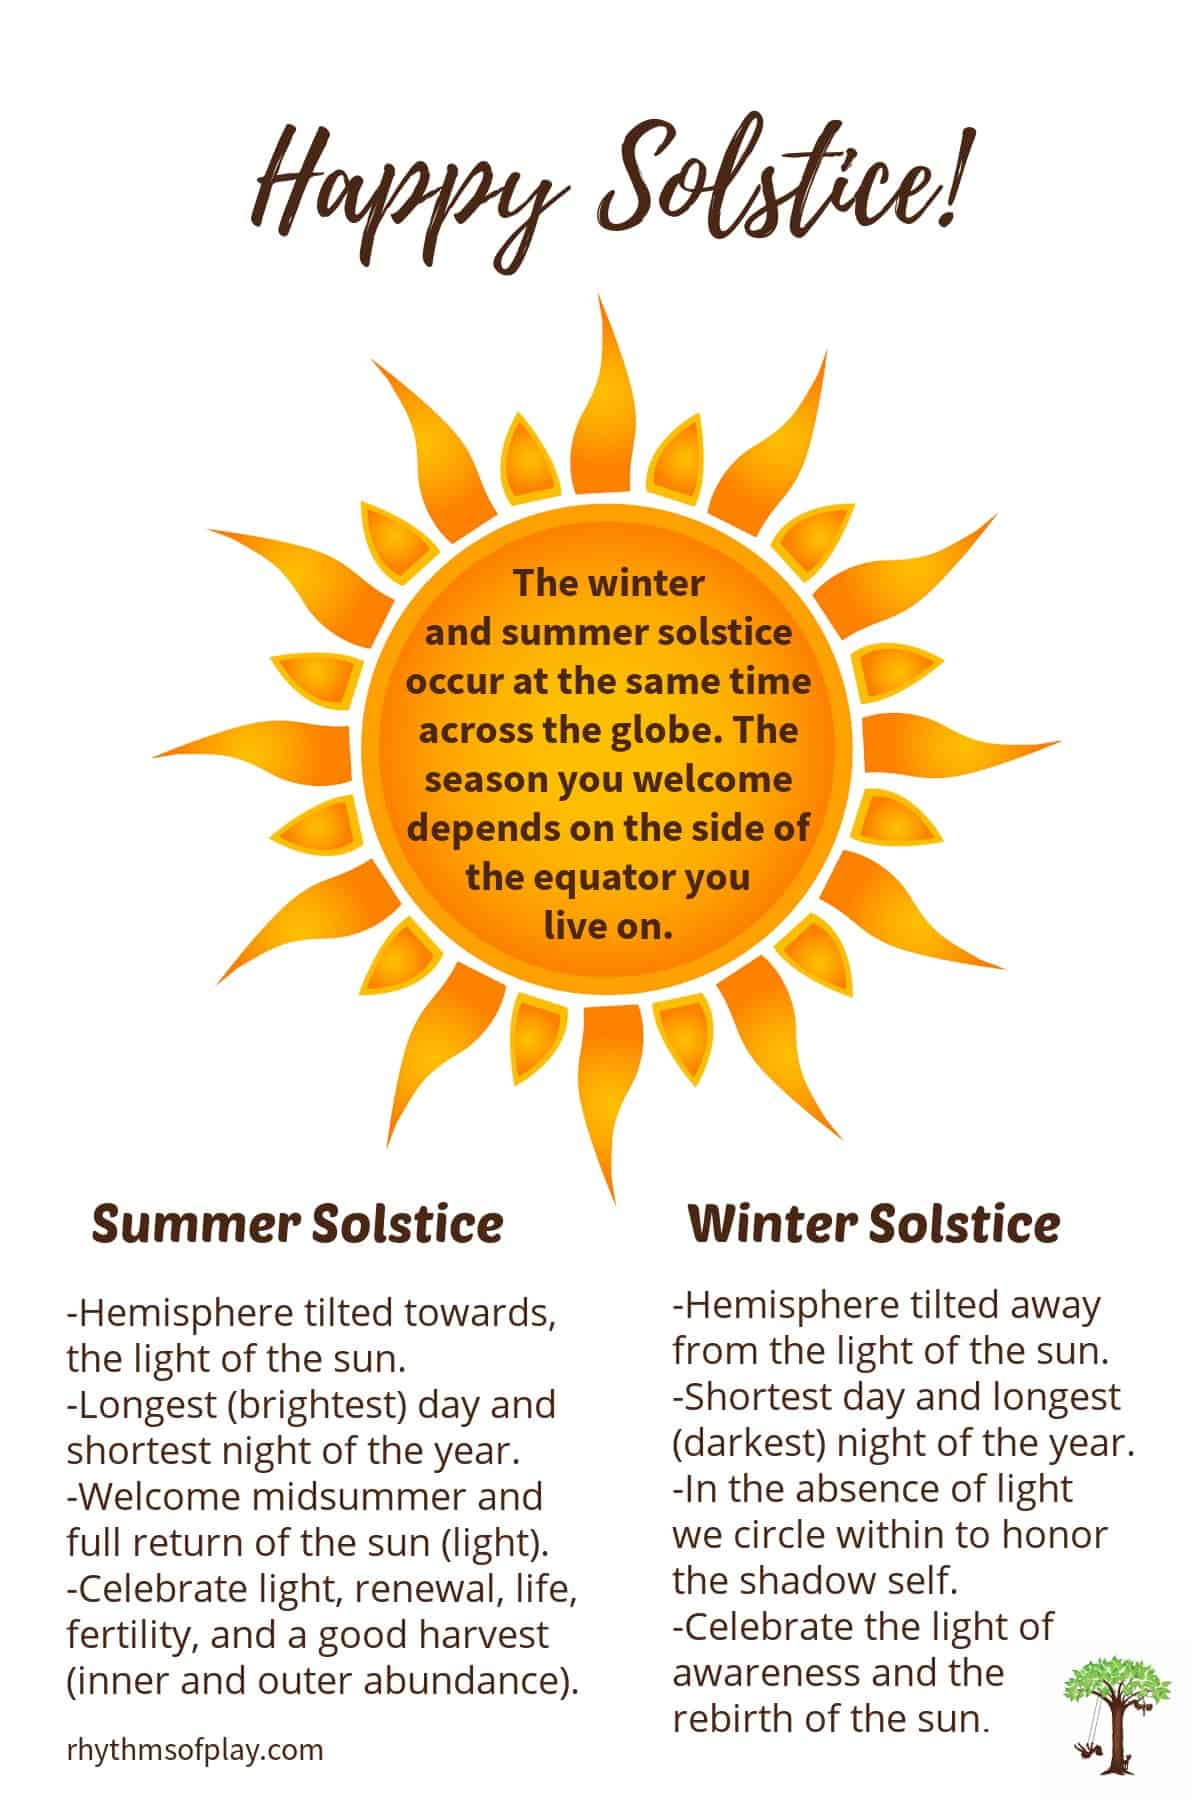 Sun solstice graphic with list of summer and winter solstice facts